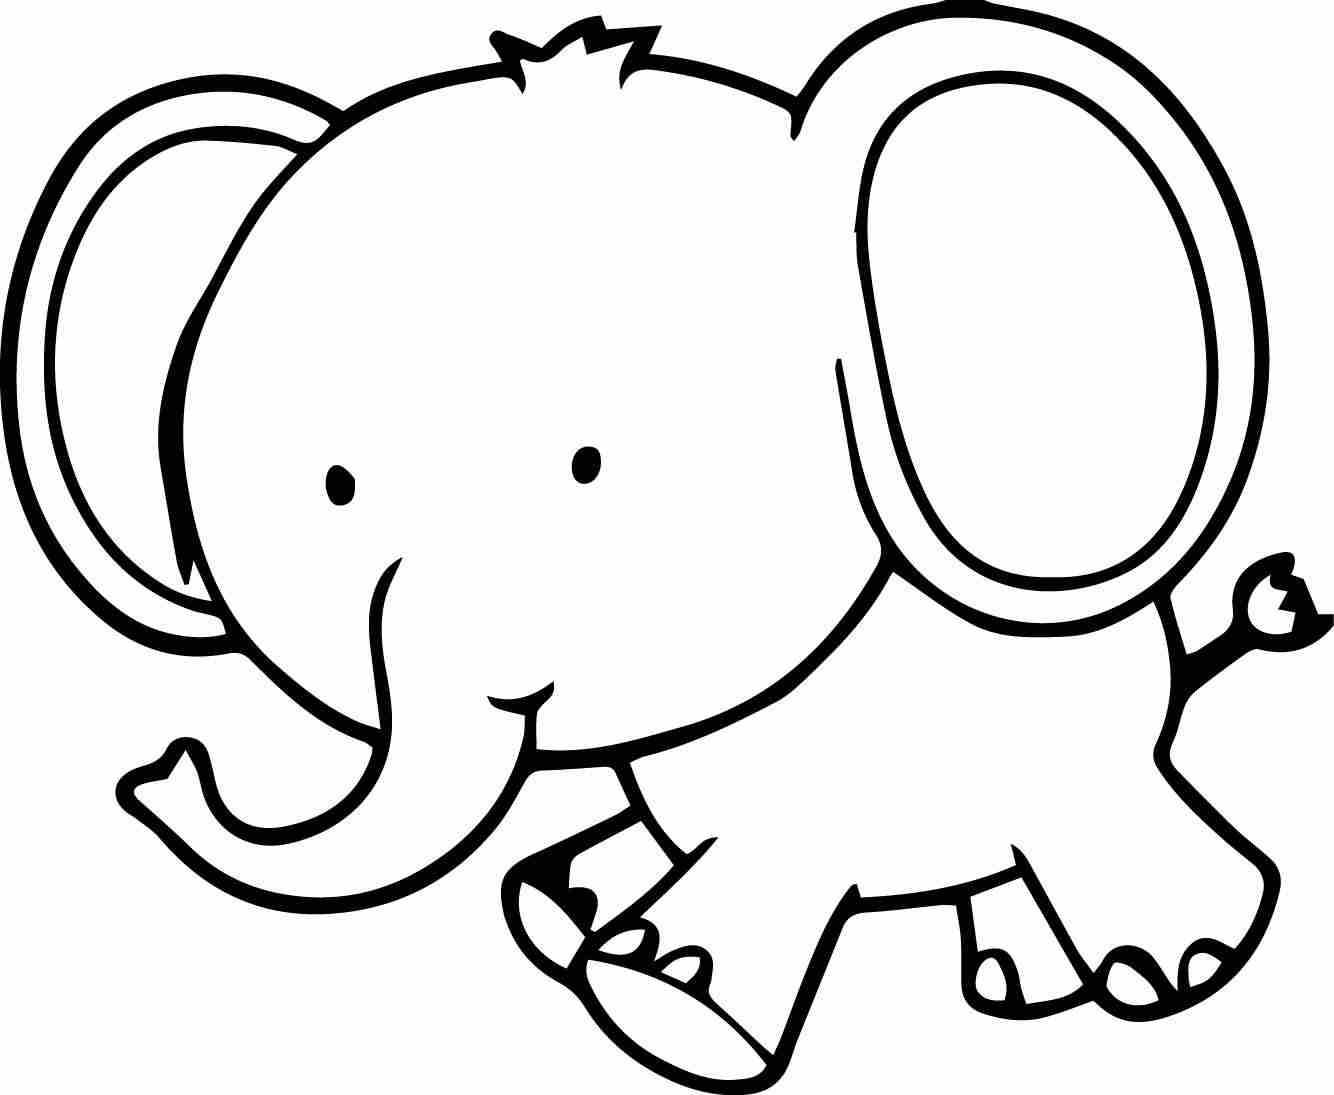 1334x1095 Very Cute Small Elephant Coloring Page Wecoloringpage